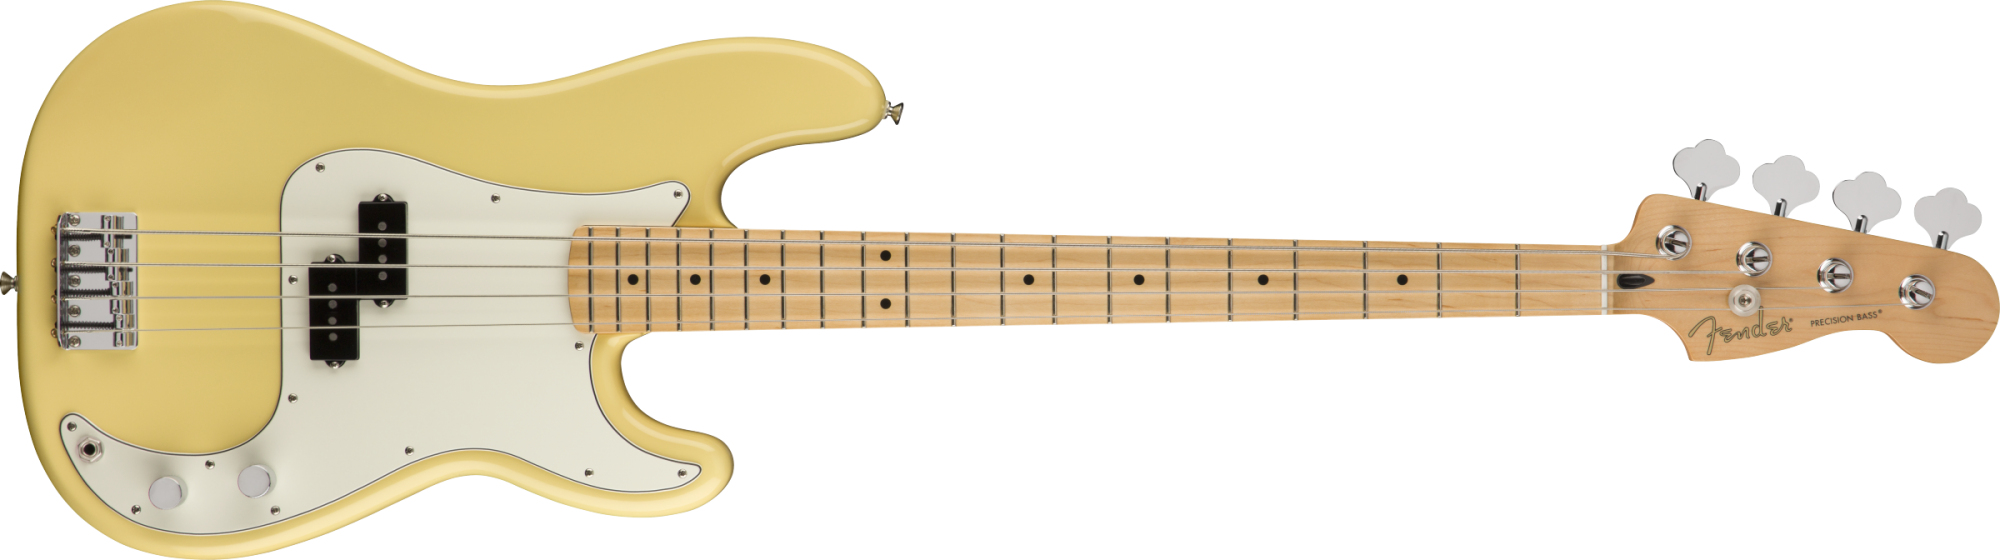 Player Precision Bass, Maple Neck